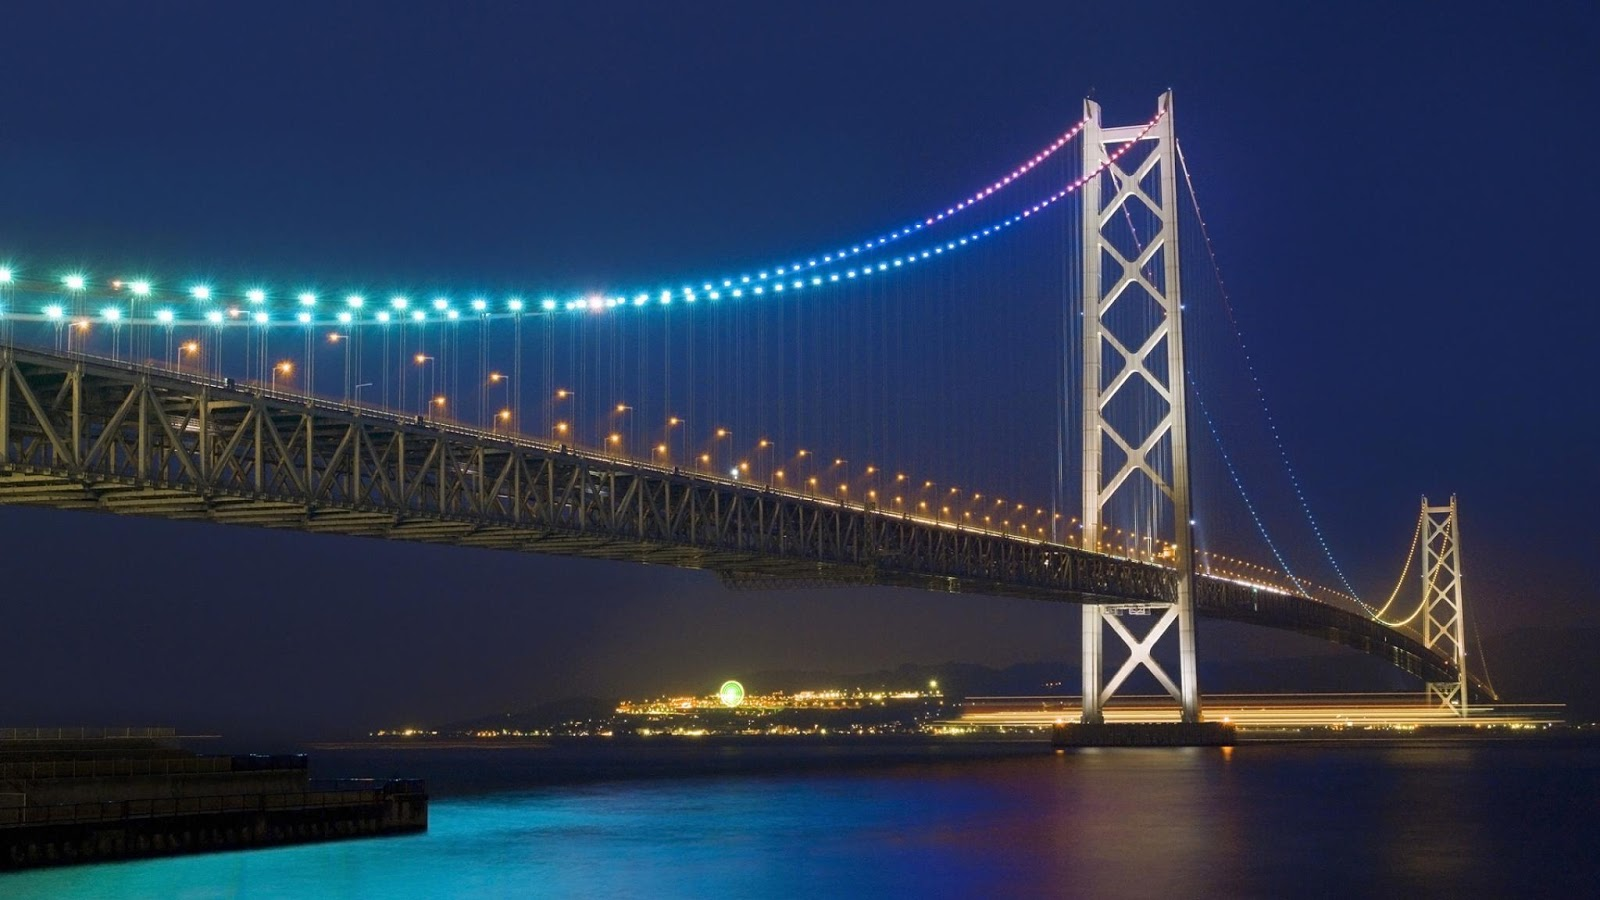 Akashi Kaikyo Bridge Wallpapers HD Wallpapers Cool - akashi kaikyo bridge wallpapers